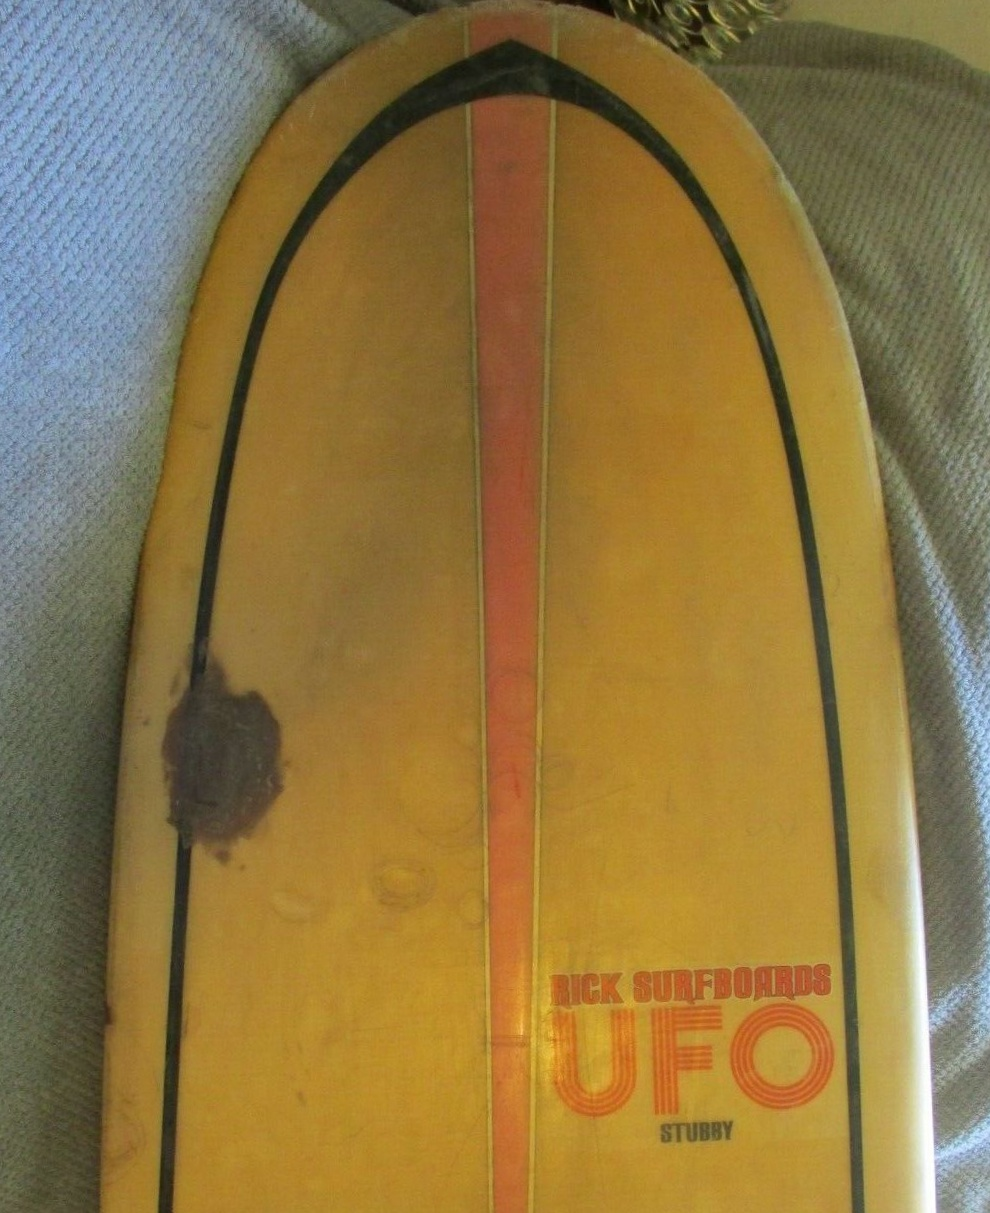 Rick Surfboards UFO Stubby Model Deck.jpg